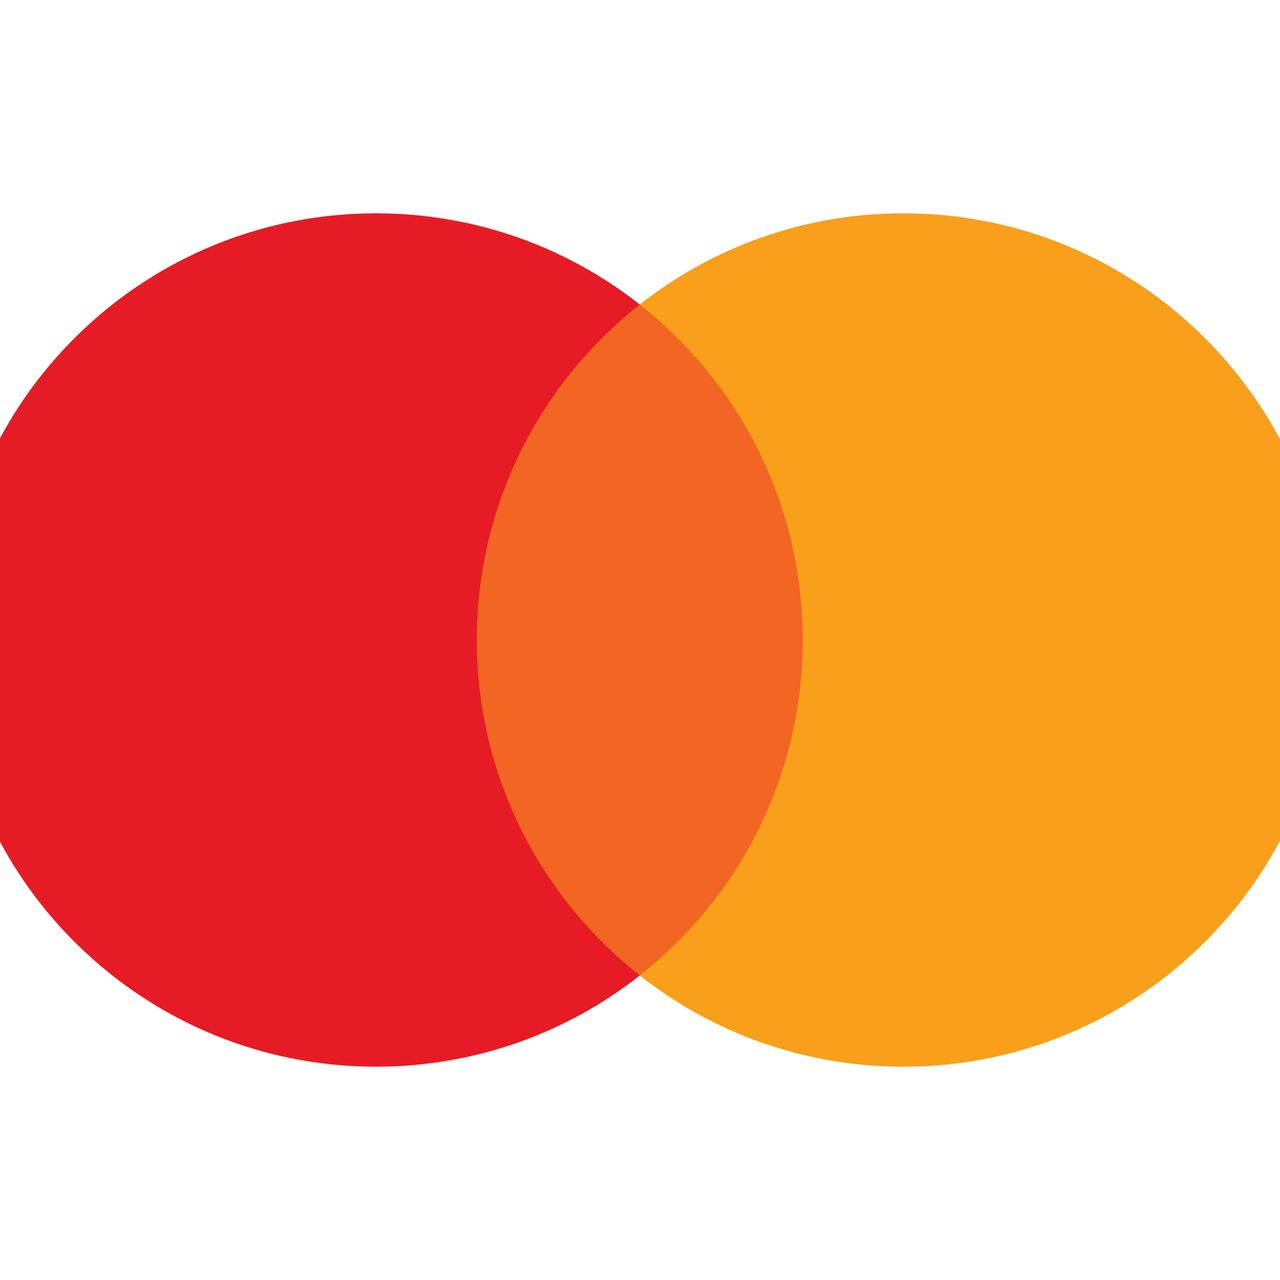 Mastercard Drops Its Name from Logo.